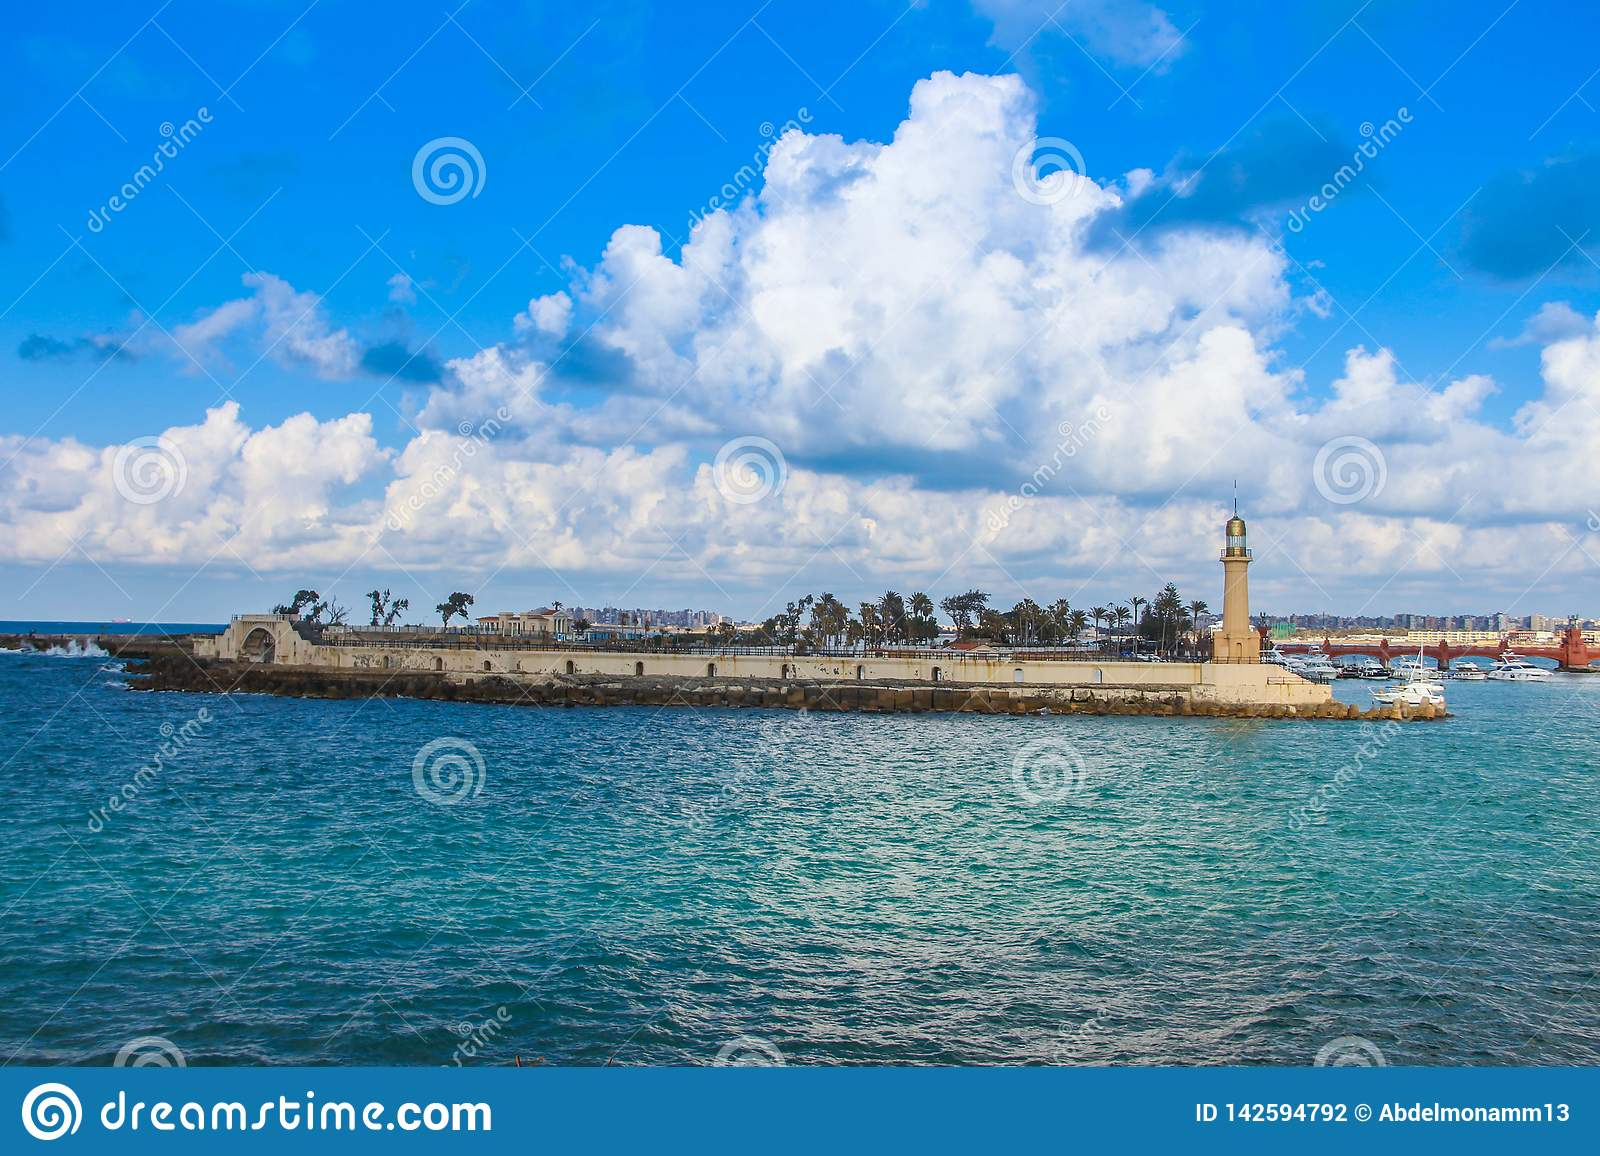 Lighthouse in the sea Alexandria  in Egypt almontazah